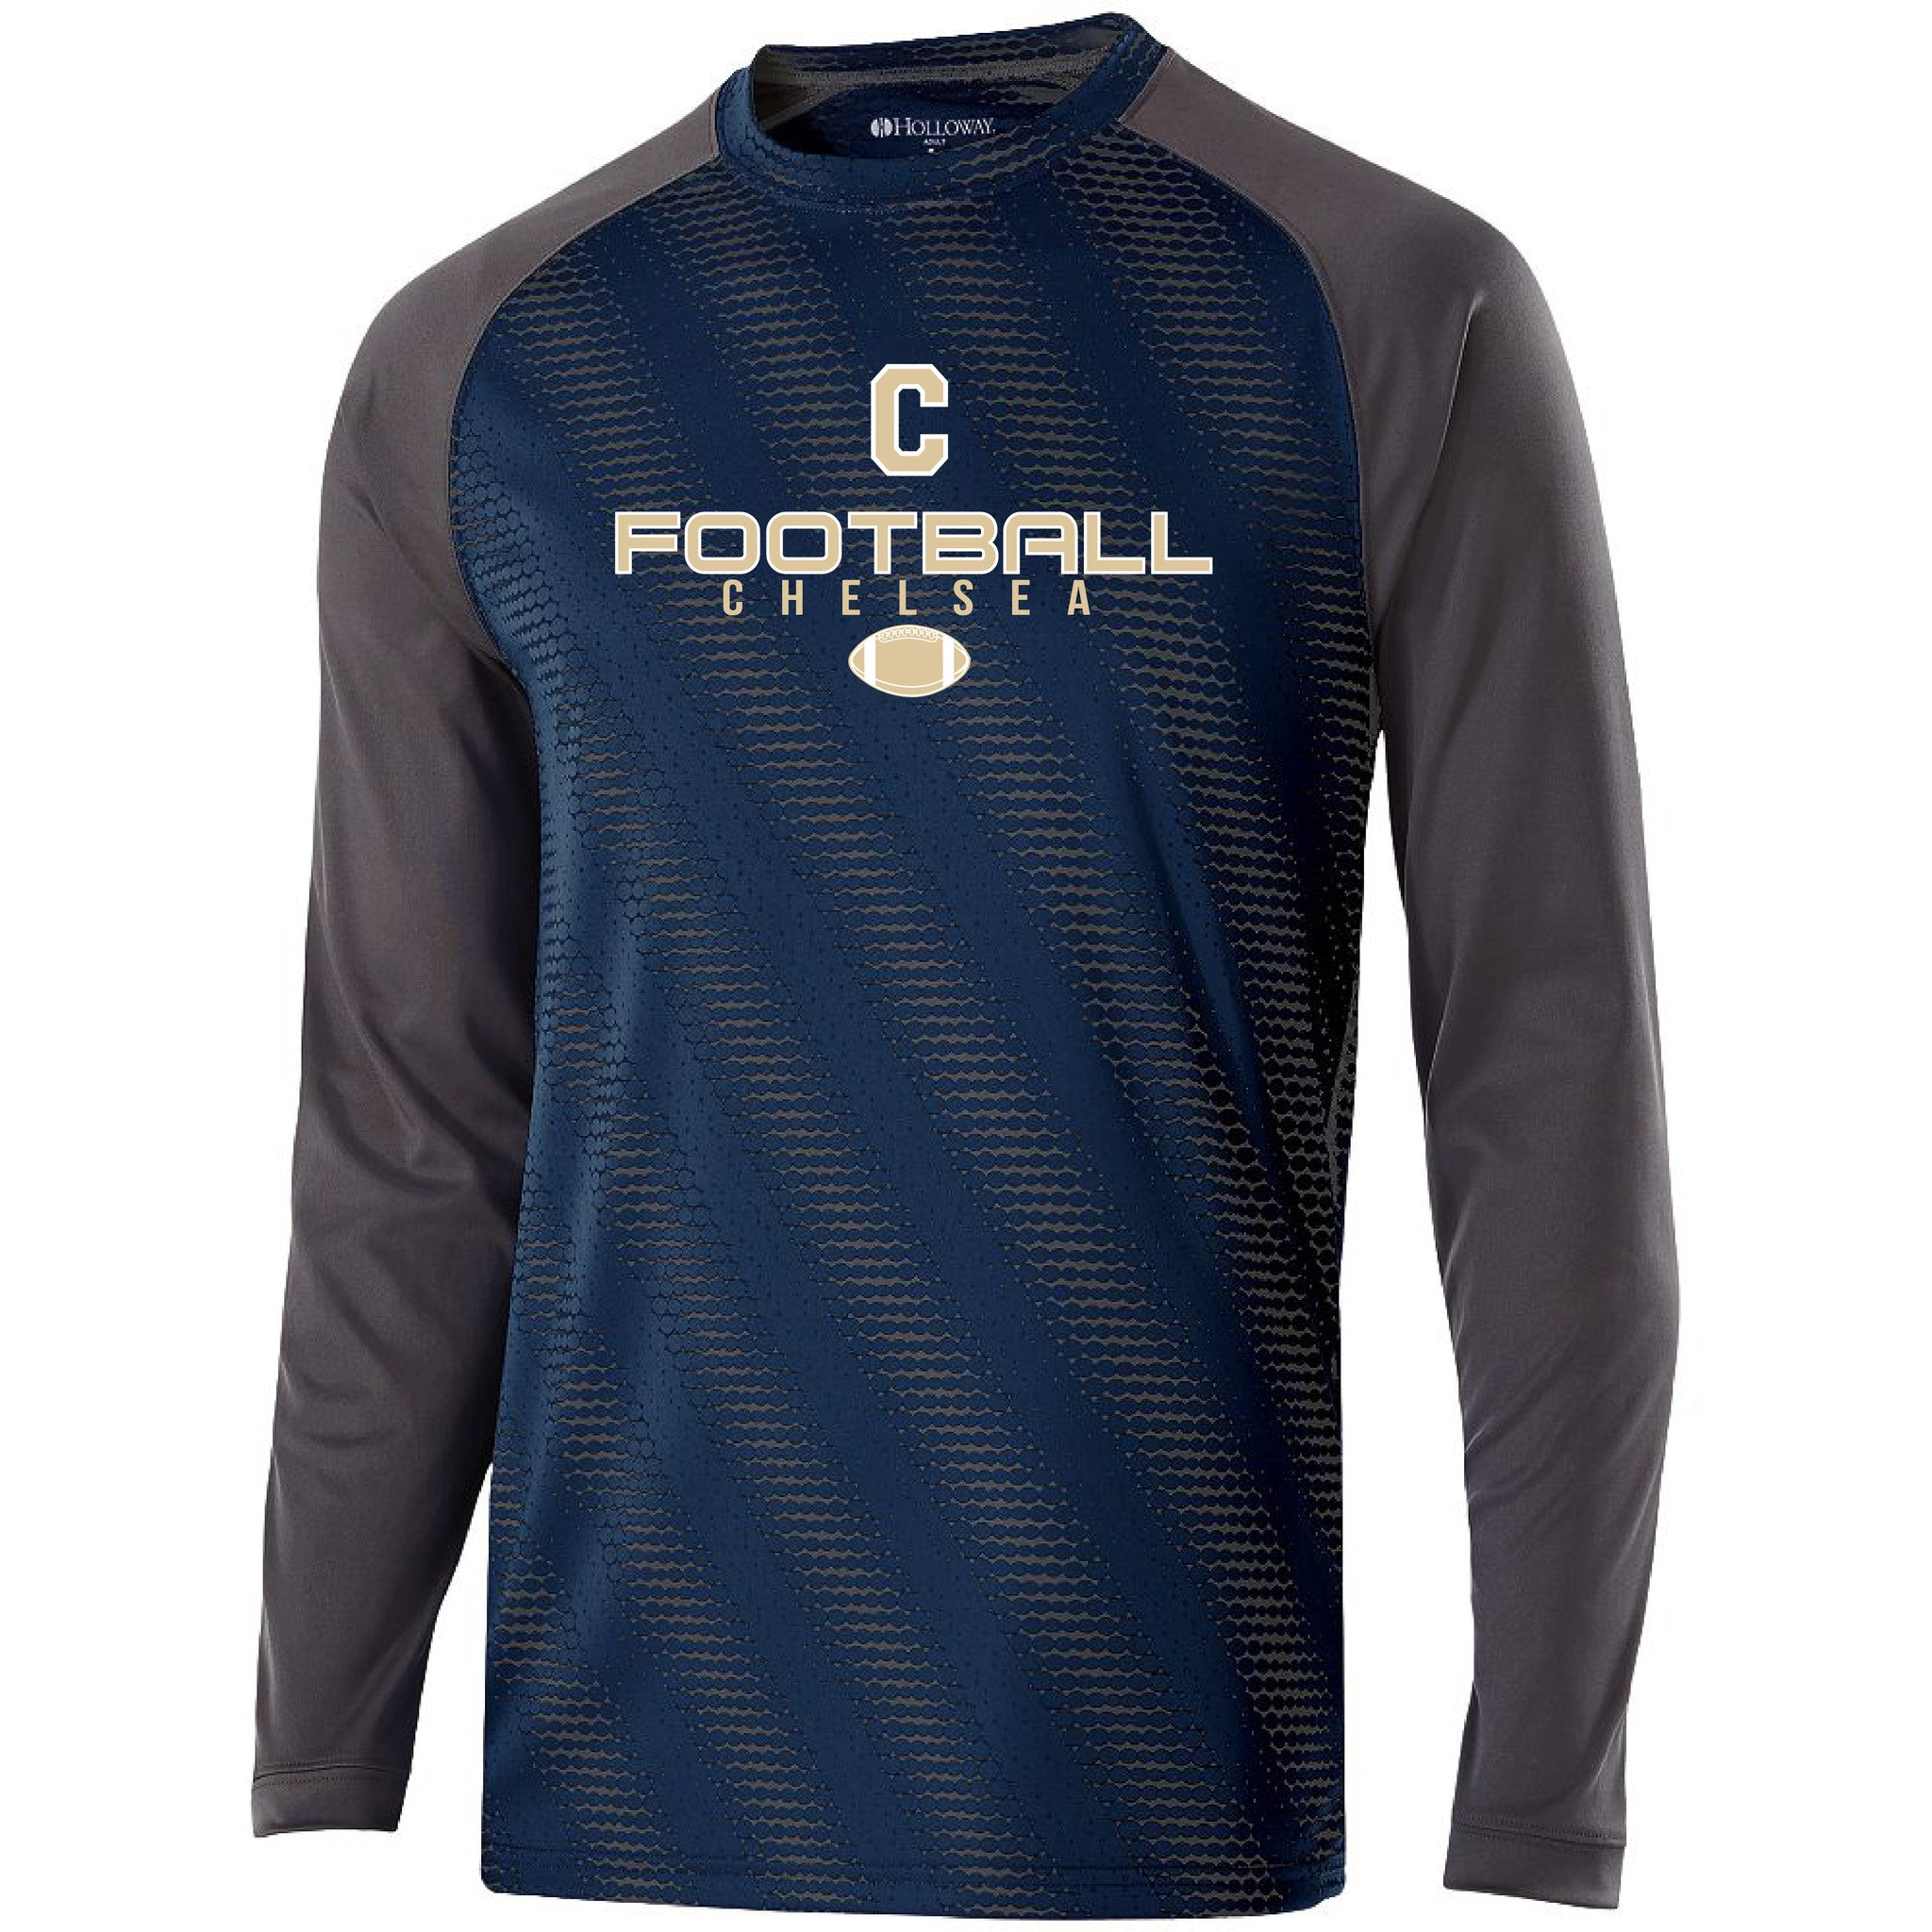 Youth Chelsea Football Torpedo Performance LS Shirt - Pick your Design